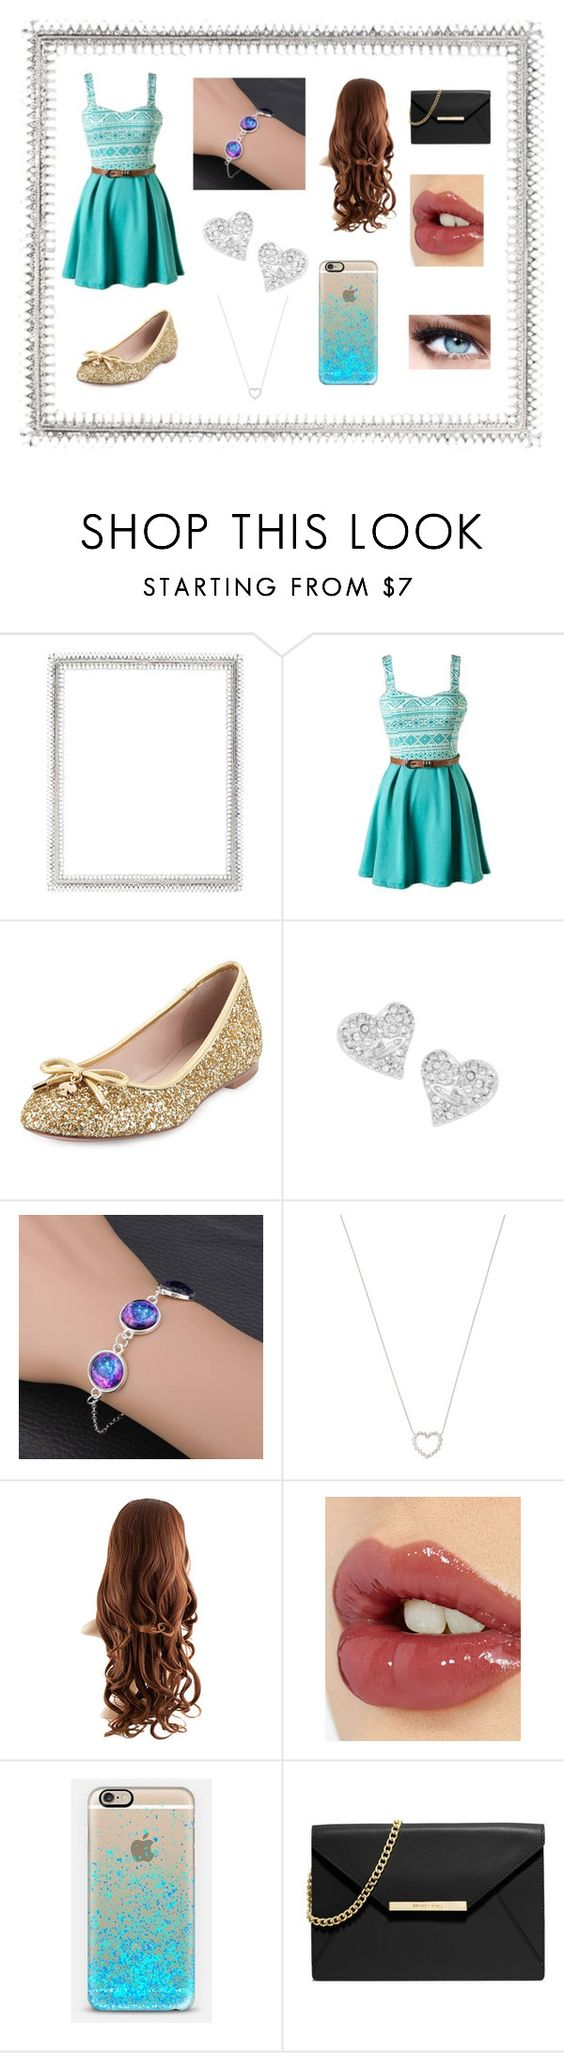 """""""Maddie's creation"""" by abbymcwherter ❤ liked on Polyvore featuring Lane Crawford, Kate Spade, Vivienne Westwood, Tiffany & Co., Charlotte Tilbury, Casetify, MICHAEL Michael Kors, Maybelline, women's clothing and women's fashion"""